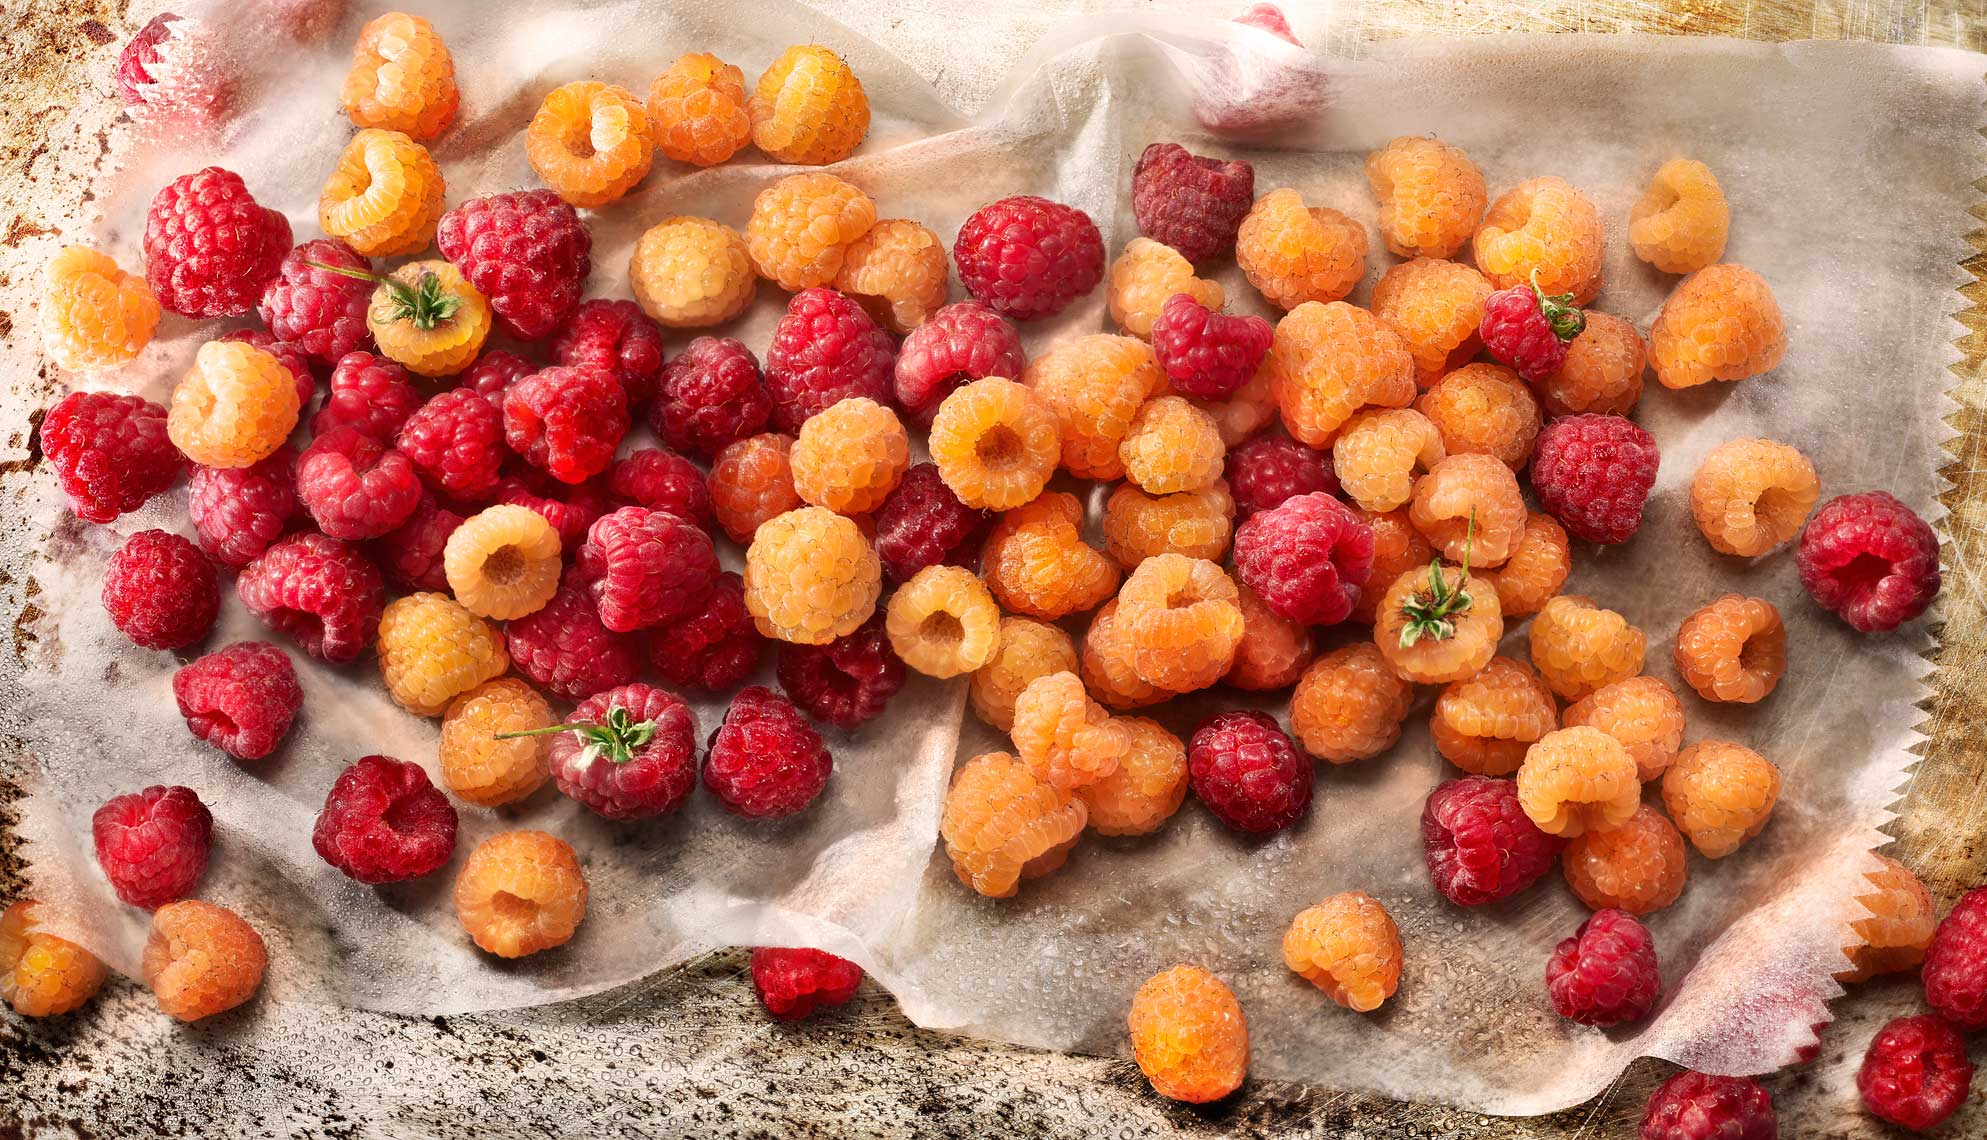 Glasshouse Assignment - David Bishop - Food Photography - Raspberries